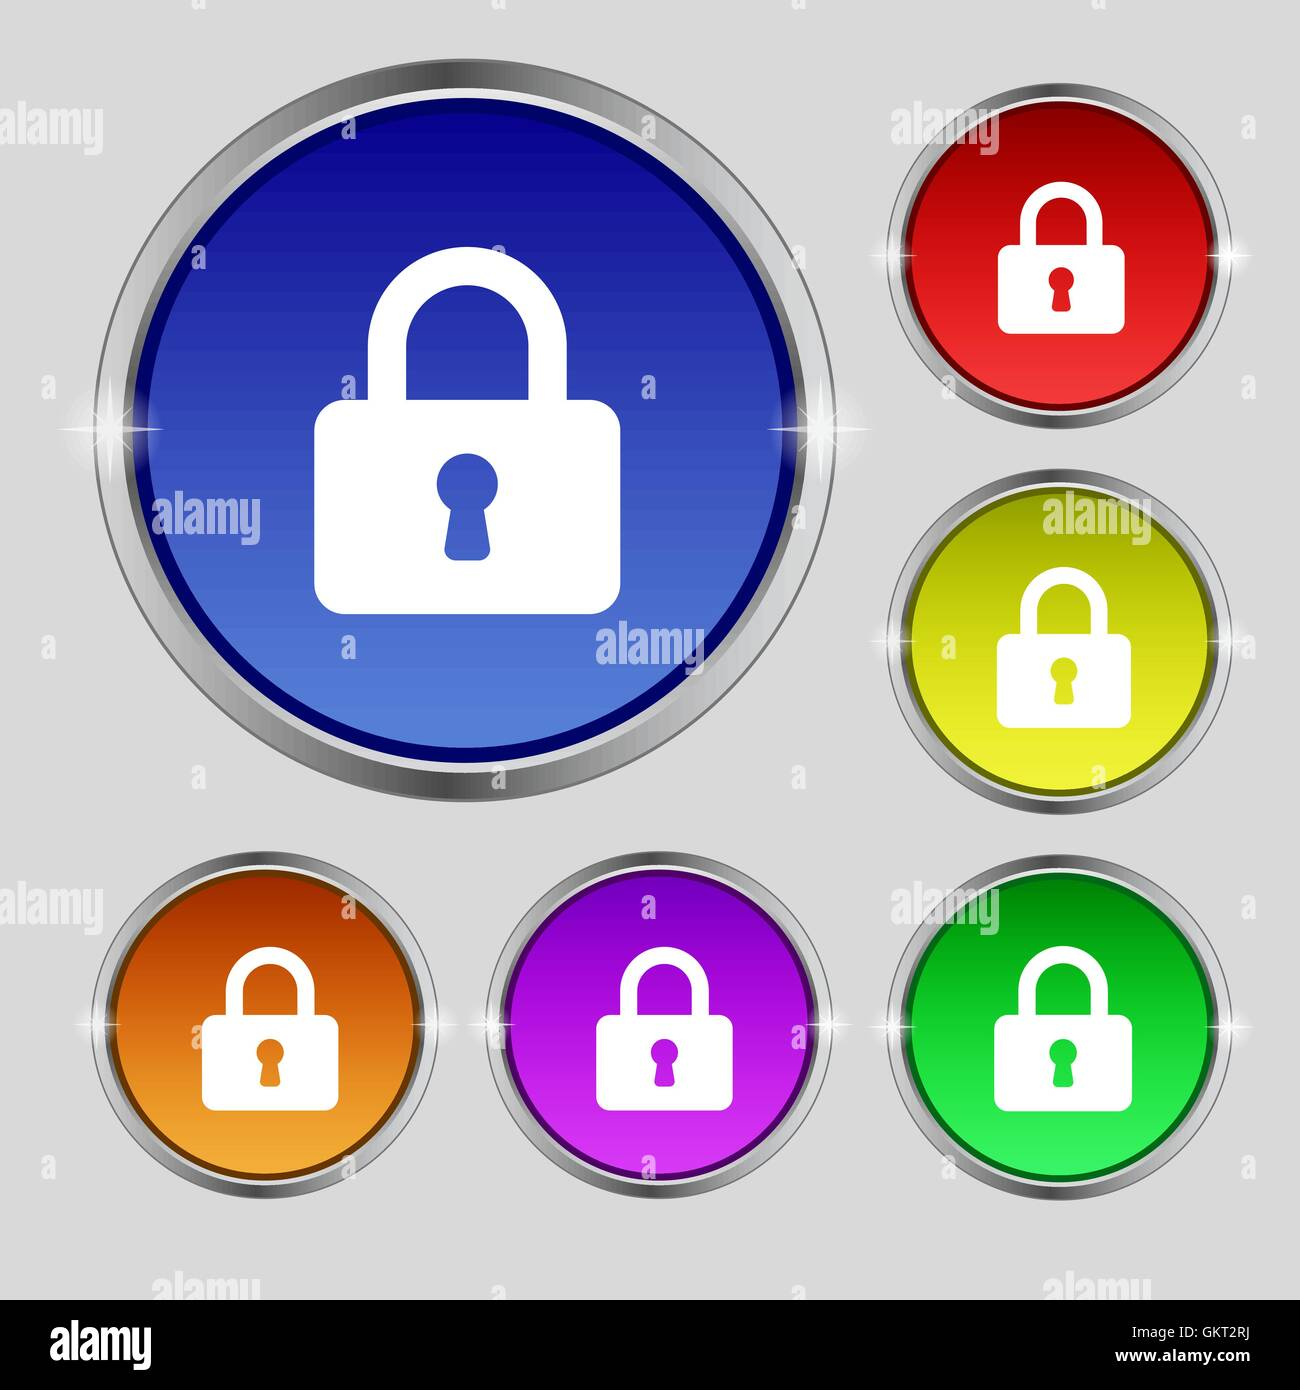 Lock Icon Sign Round Symbol Stockfotos & Lock Icon Sign Round Symbol ...